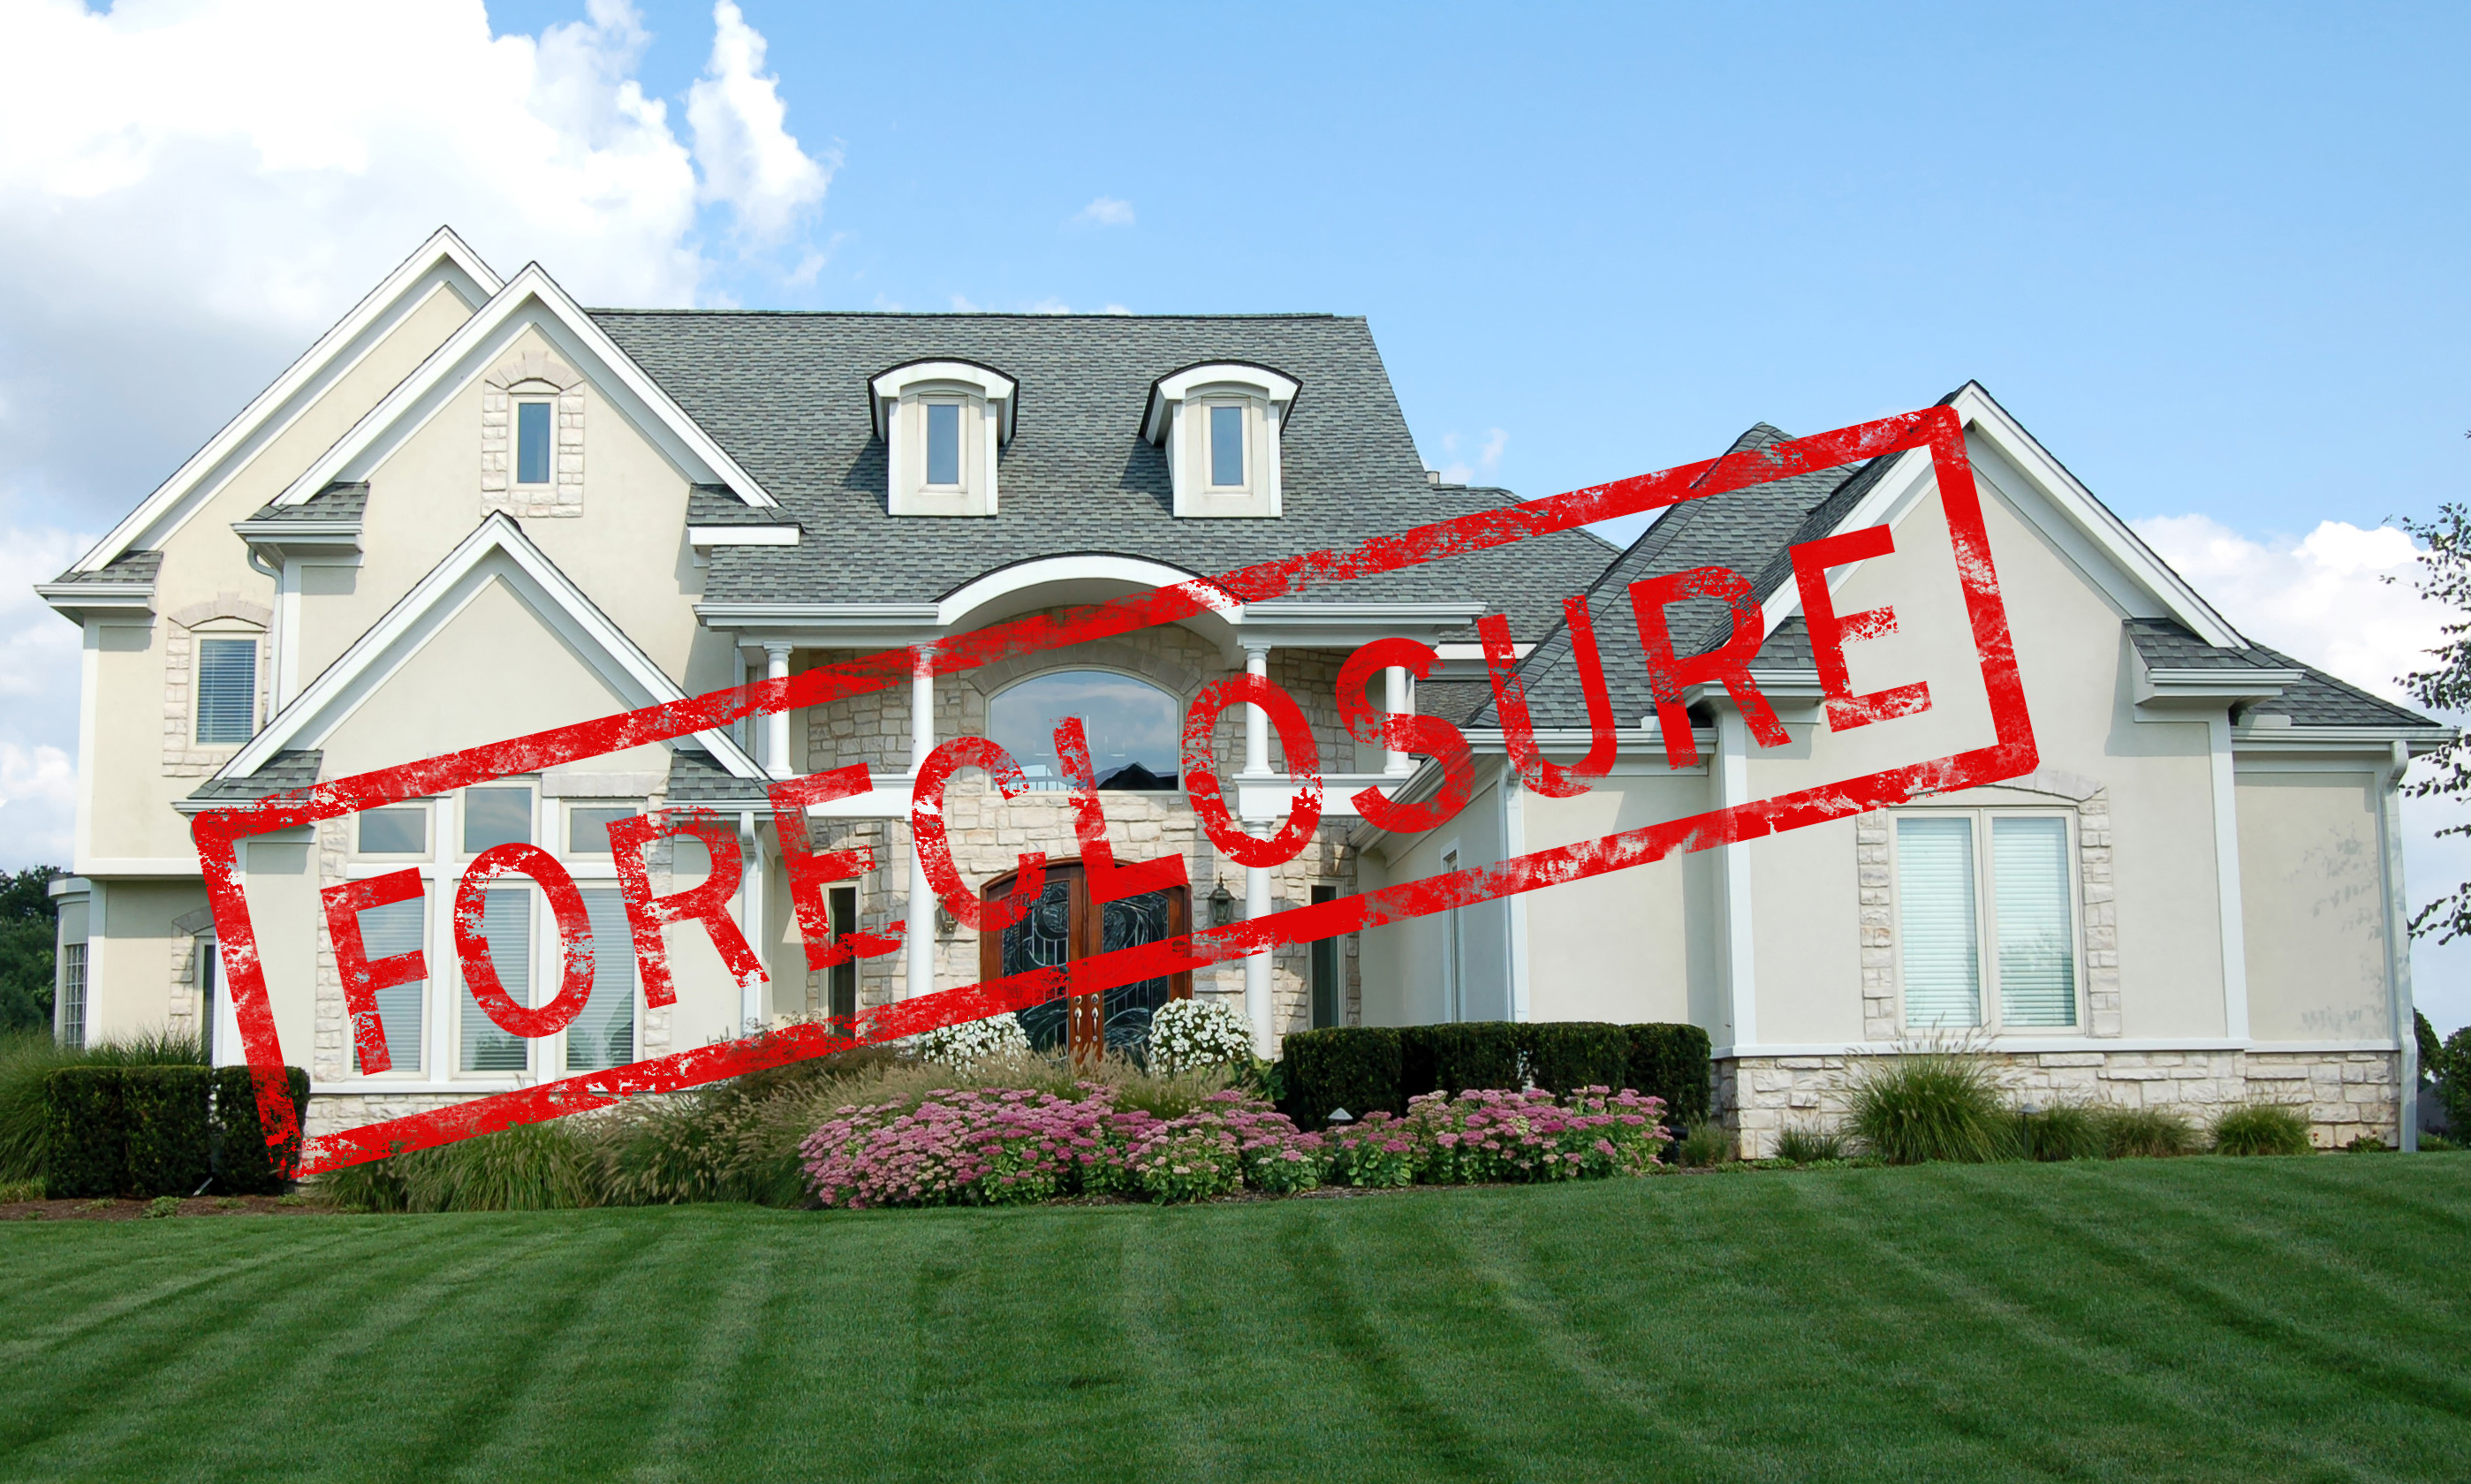 Call Shamrock Appraisals, Inc. to order valuations of Tuscaloosa foreclosures